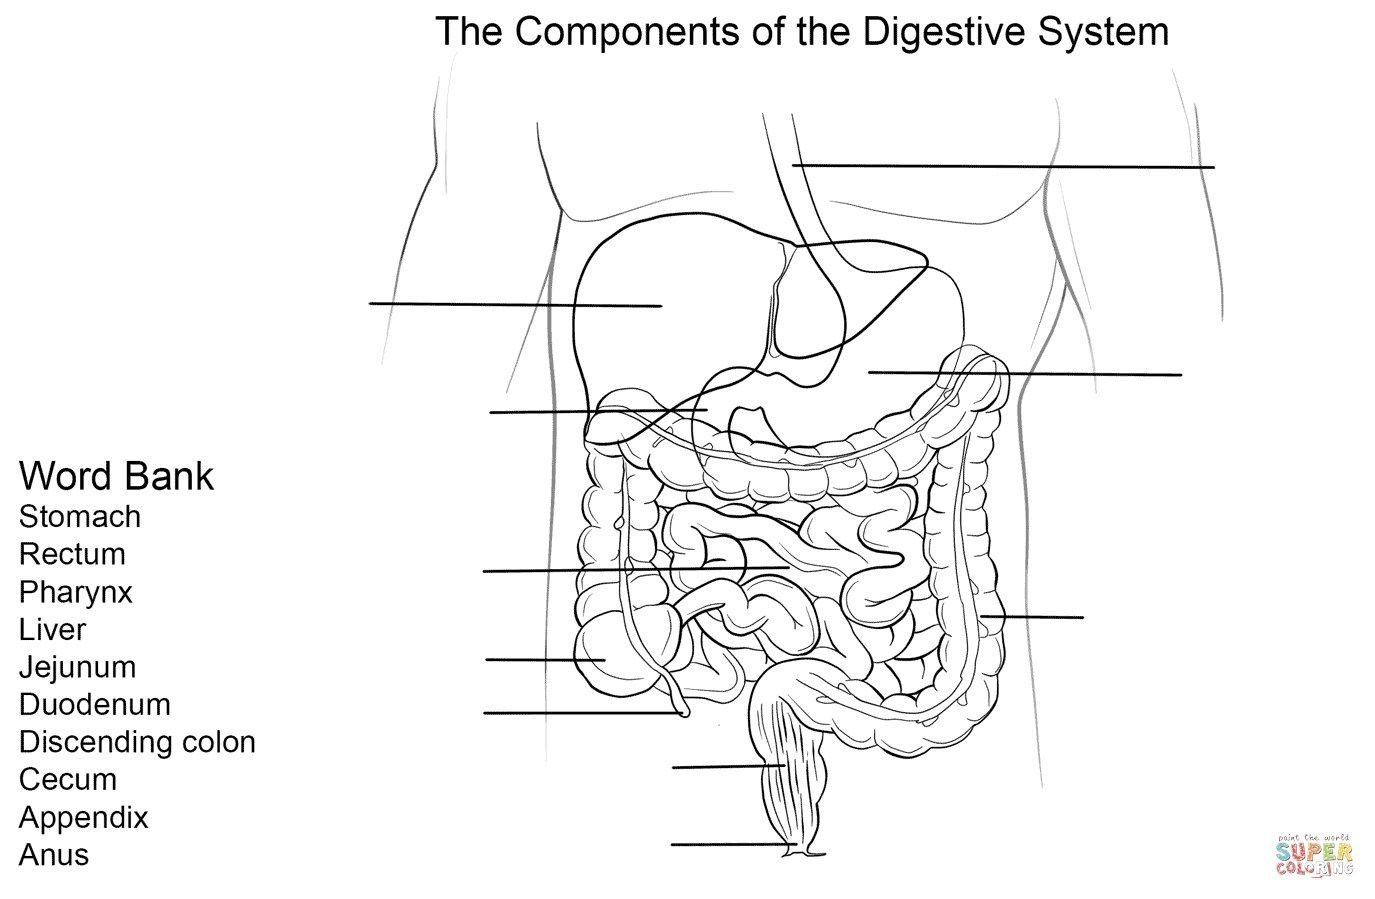 Digestive System Worksheets Middle School Digestive System Diagram to Label Digestive System Diagram